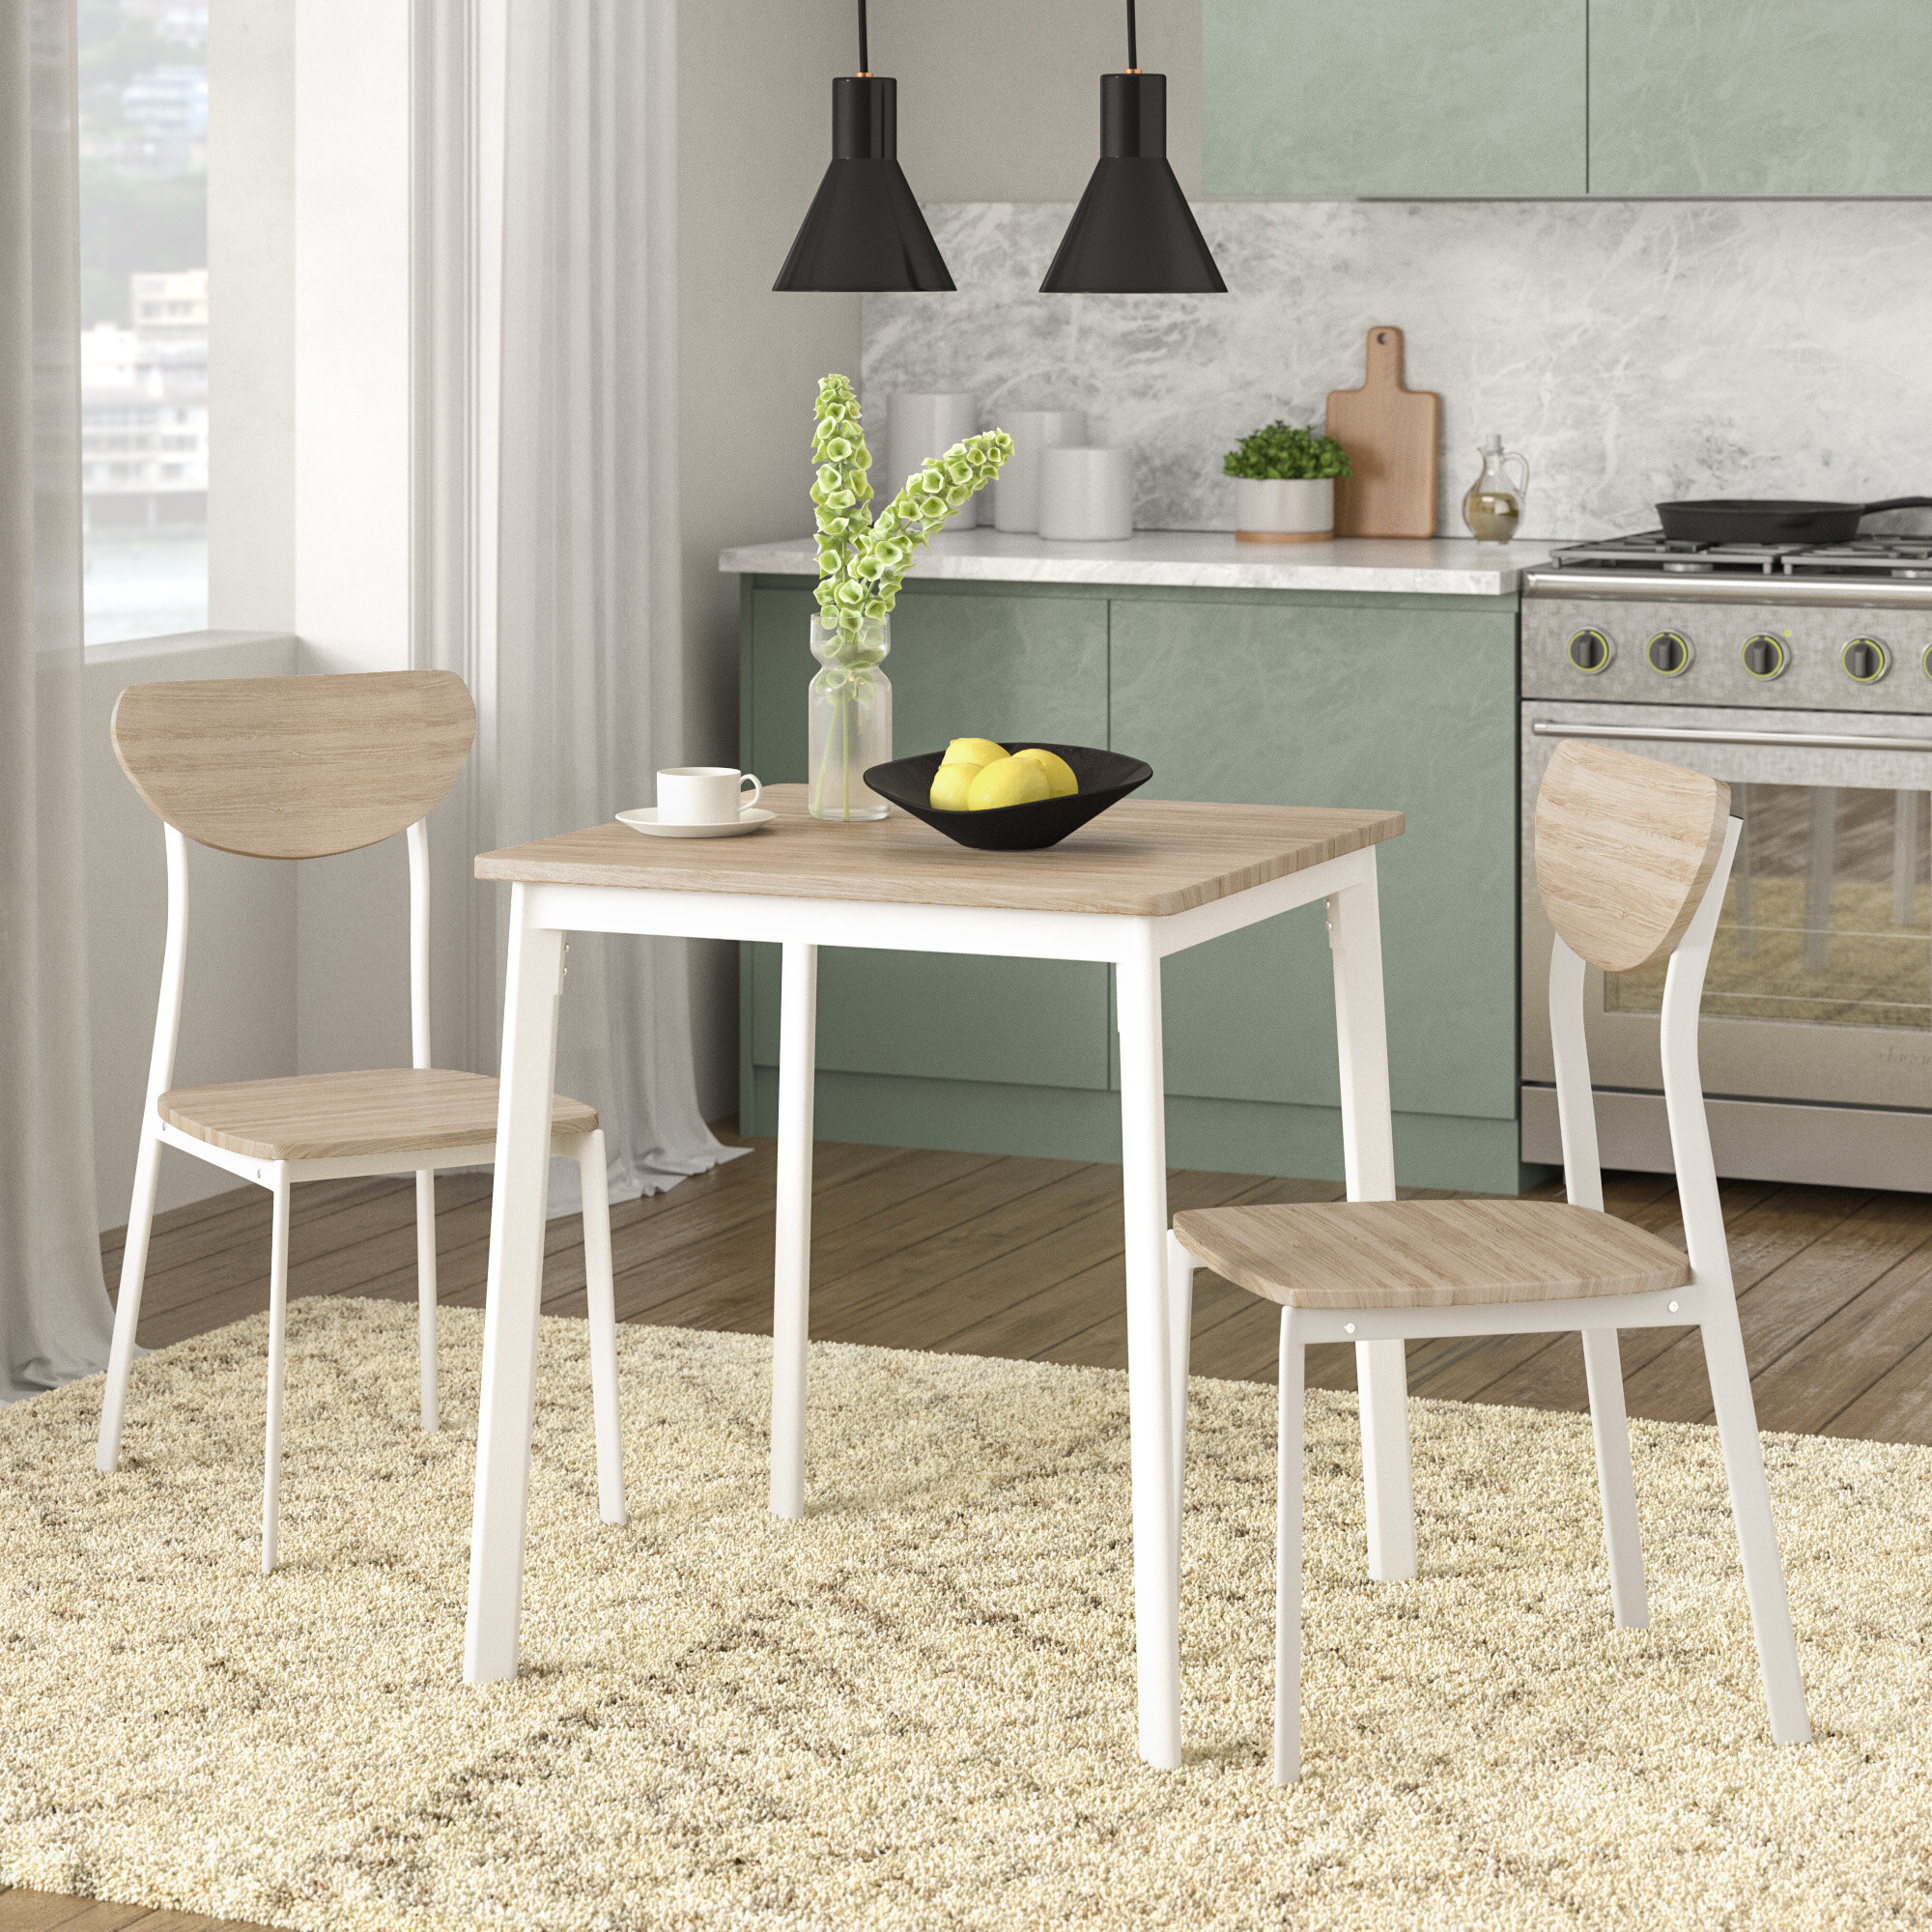 Fjorde Co Amanda Dining Set With 2 Chairs Reviews Wayfair Co Uk